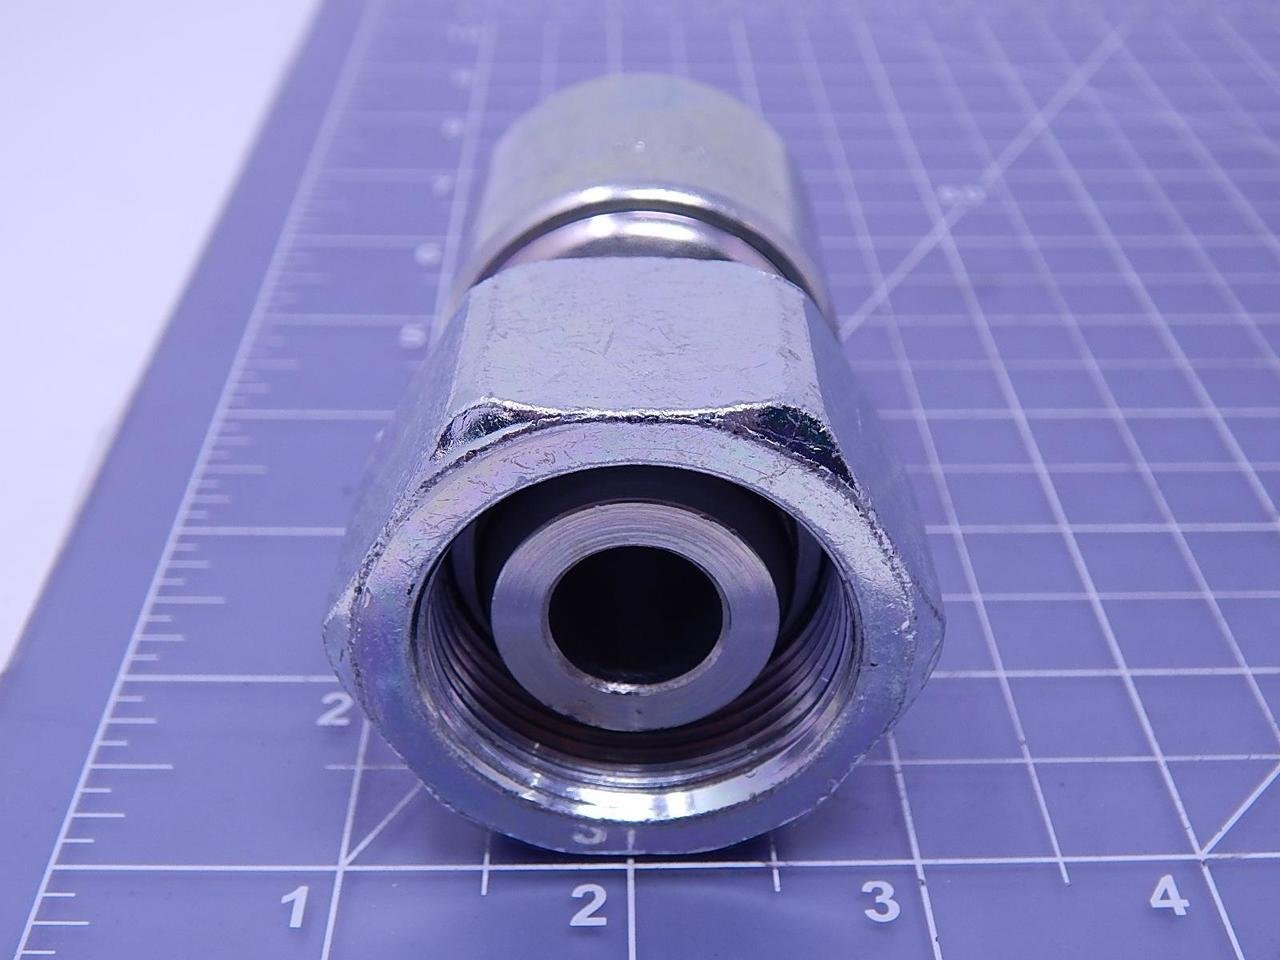 5//16-24 Thd x .091 thk Stainless QTY-10 Unicorp ECLS-0524-2 Round Captive Nut Self-Clinching